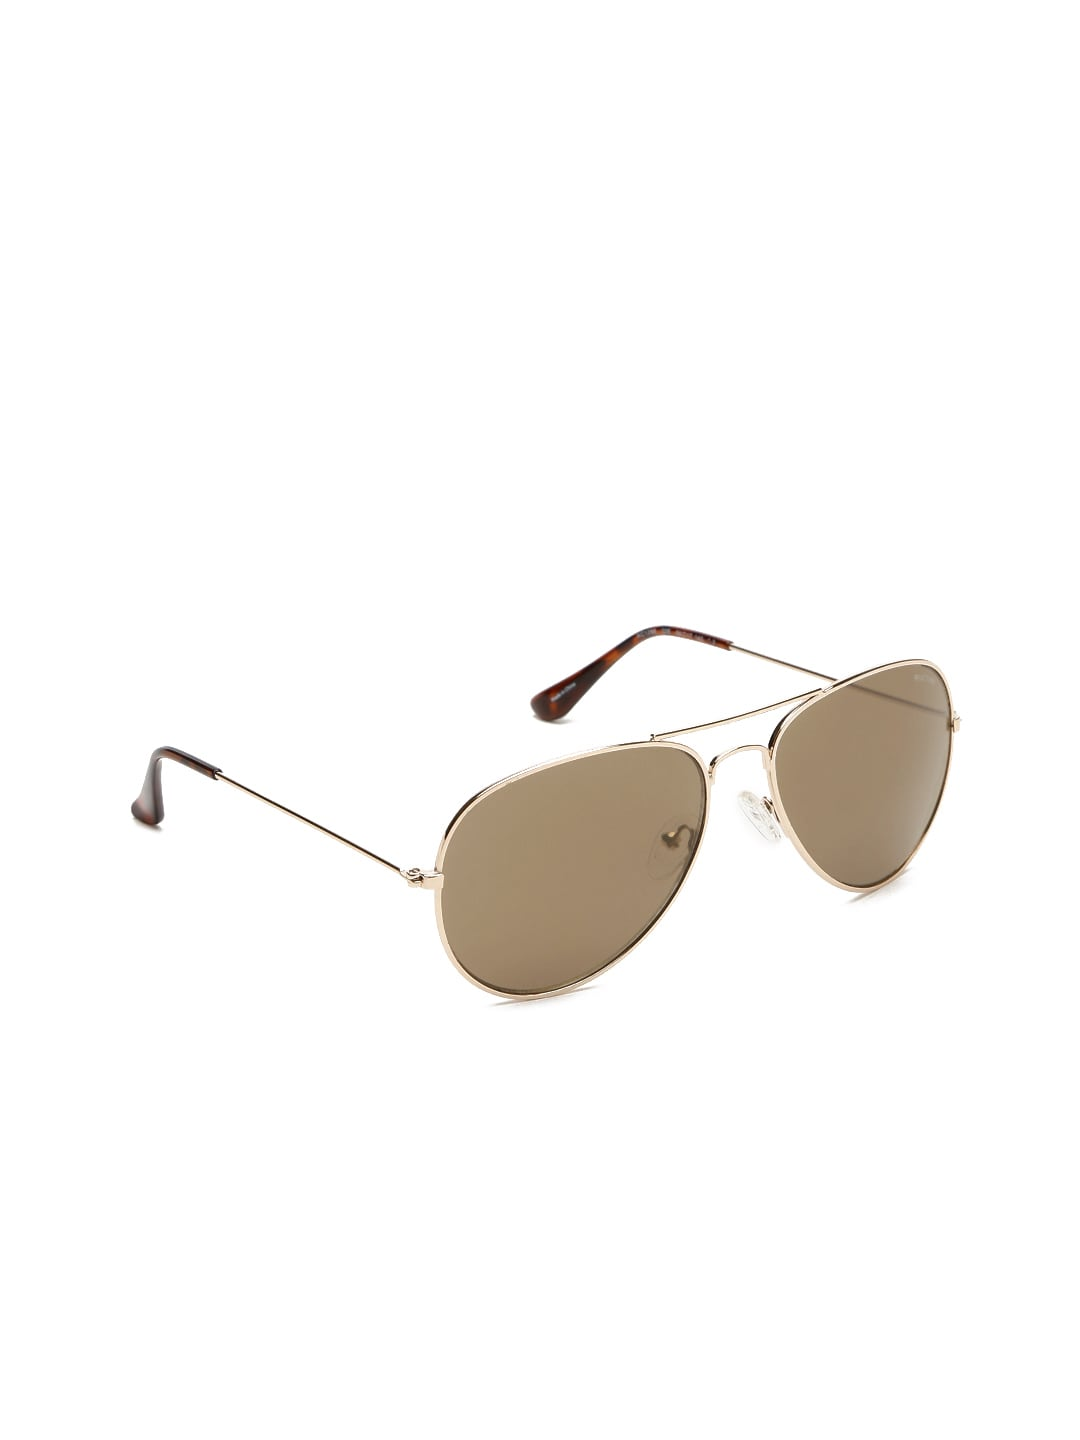 95ae873641c12 Kenneth Cole Sunglasses - Buy Kenneth Cole Sunglasses online in India